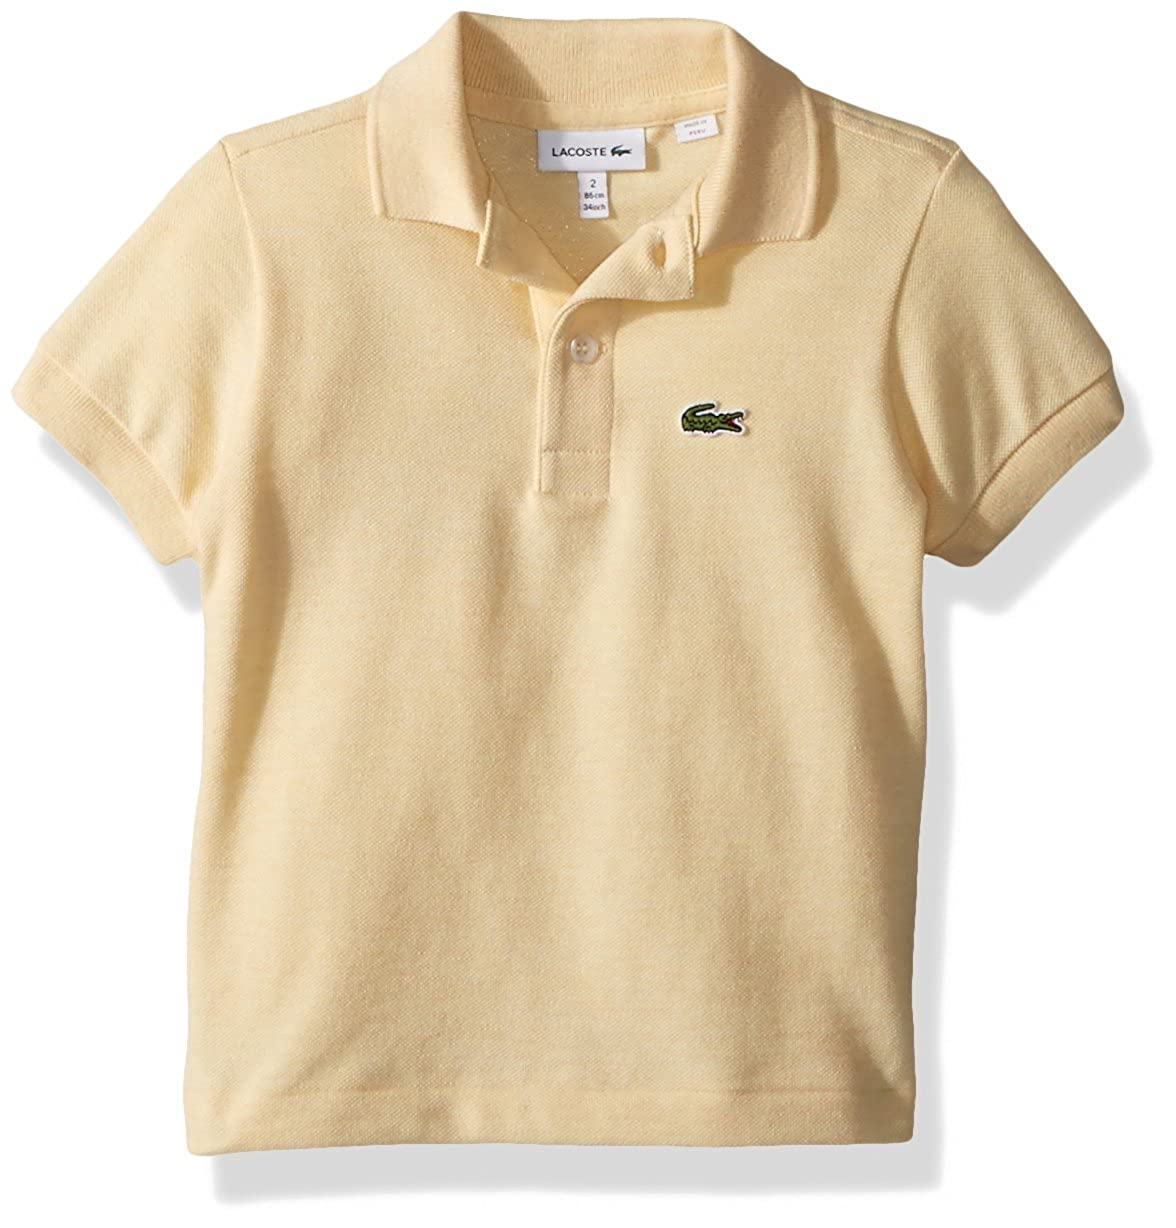 b0f3b9c2 Amazon.com: Lacoste Boys' Short Sleeve Classic Pique Polo: Clothing